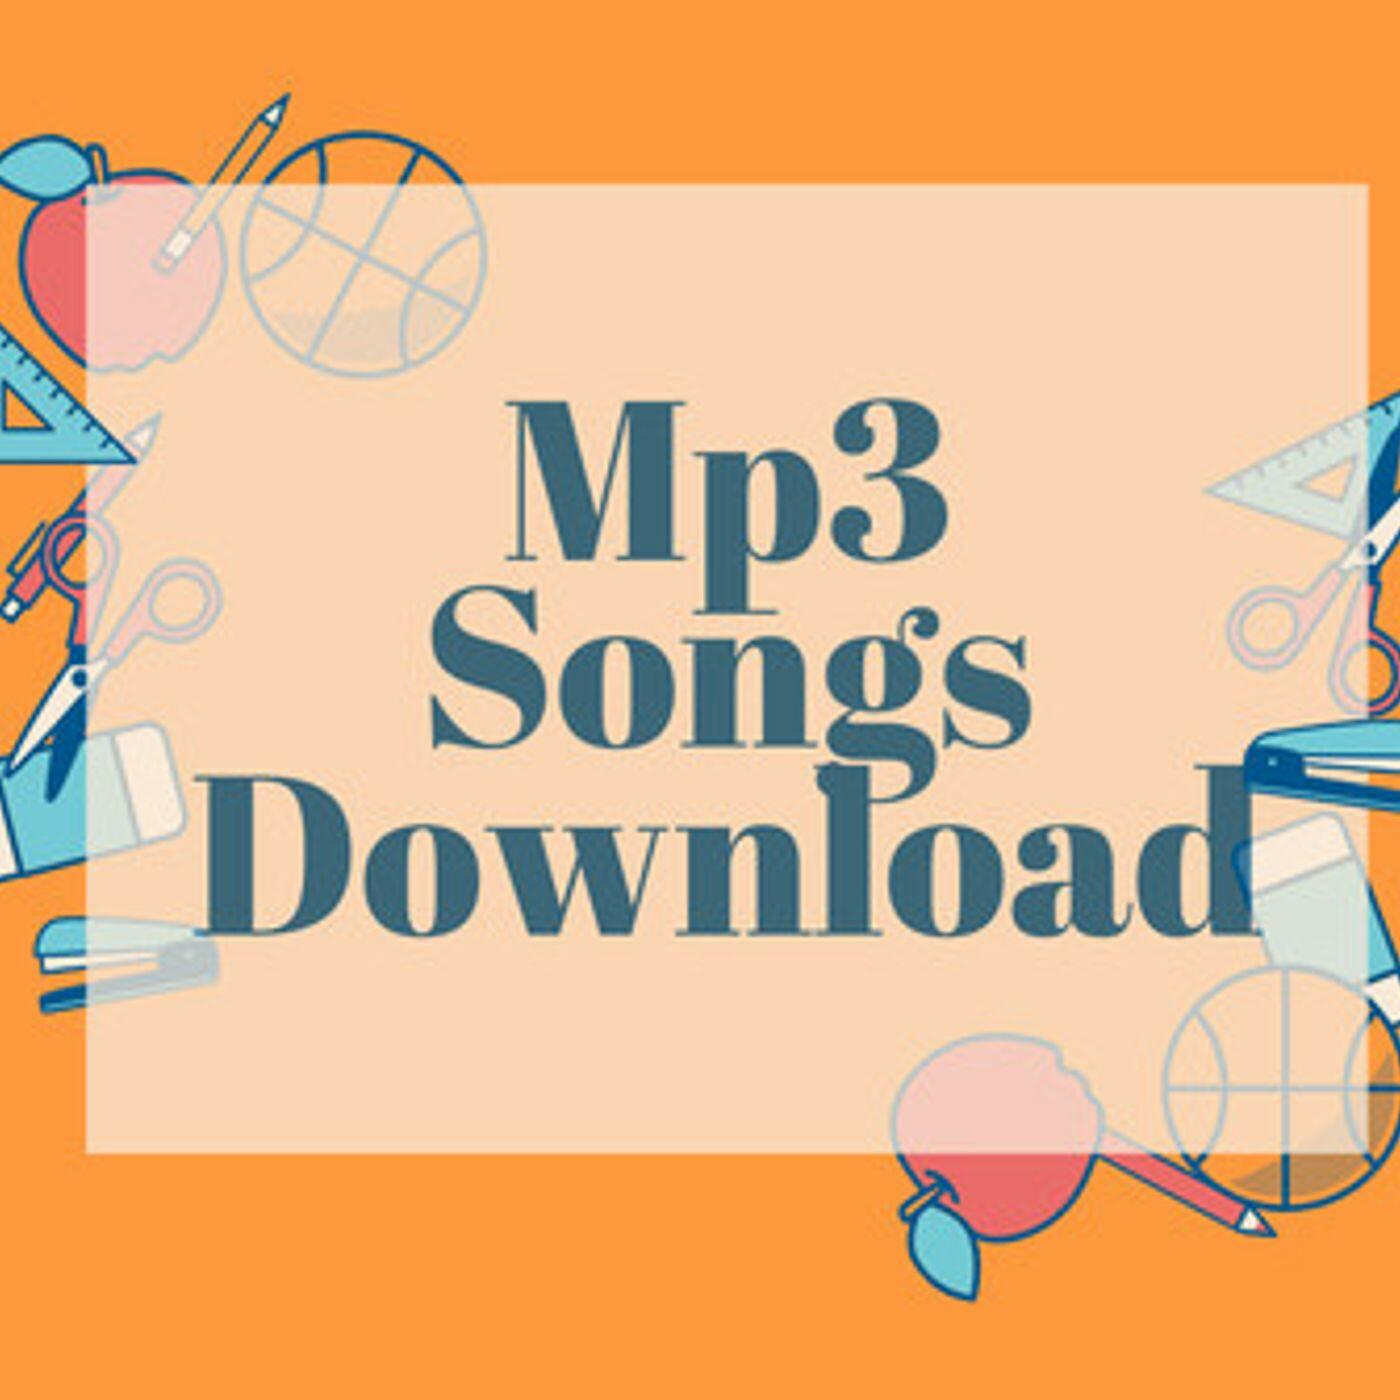 Listen To The Mp3 Songs Download Episode Listen Download Malang Title Track Full Free On Iheartradio Iheartradio